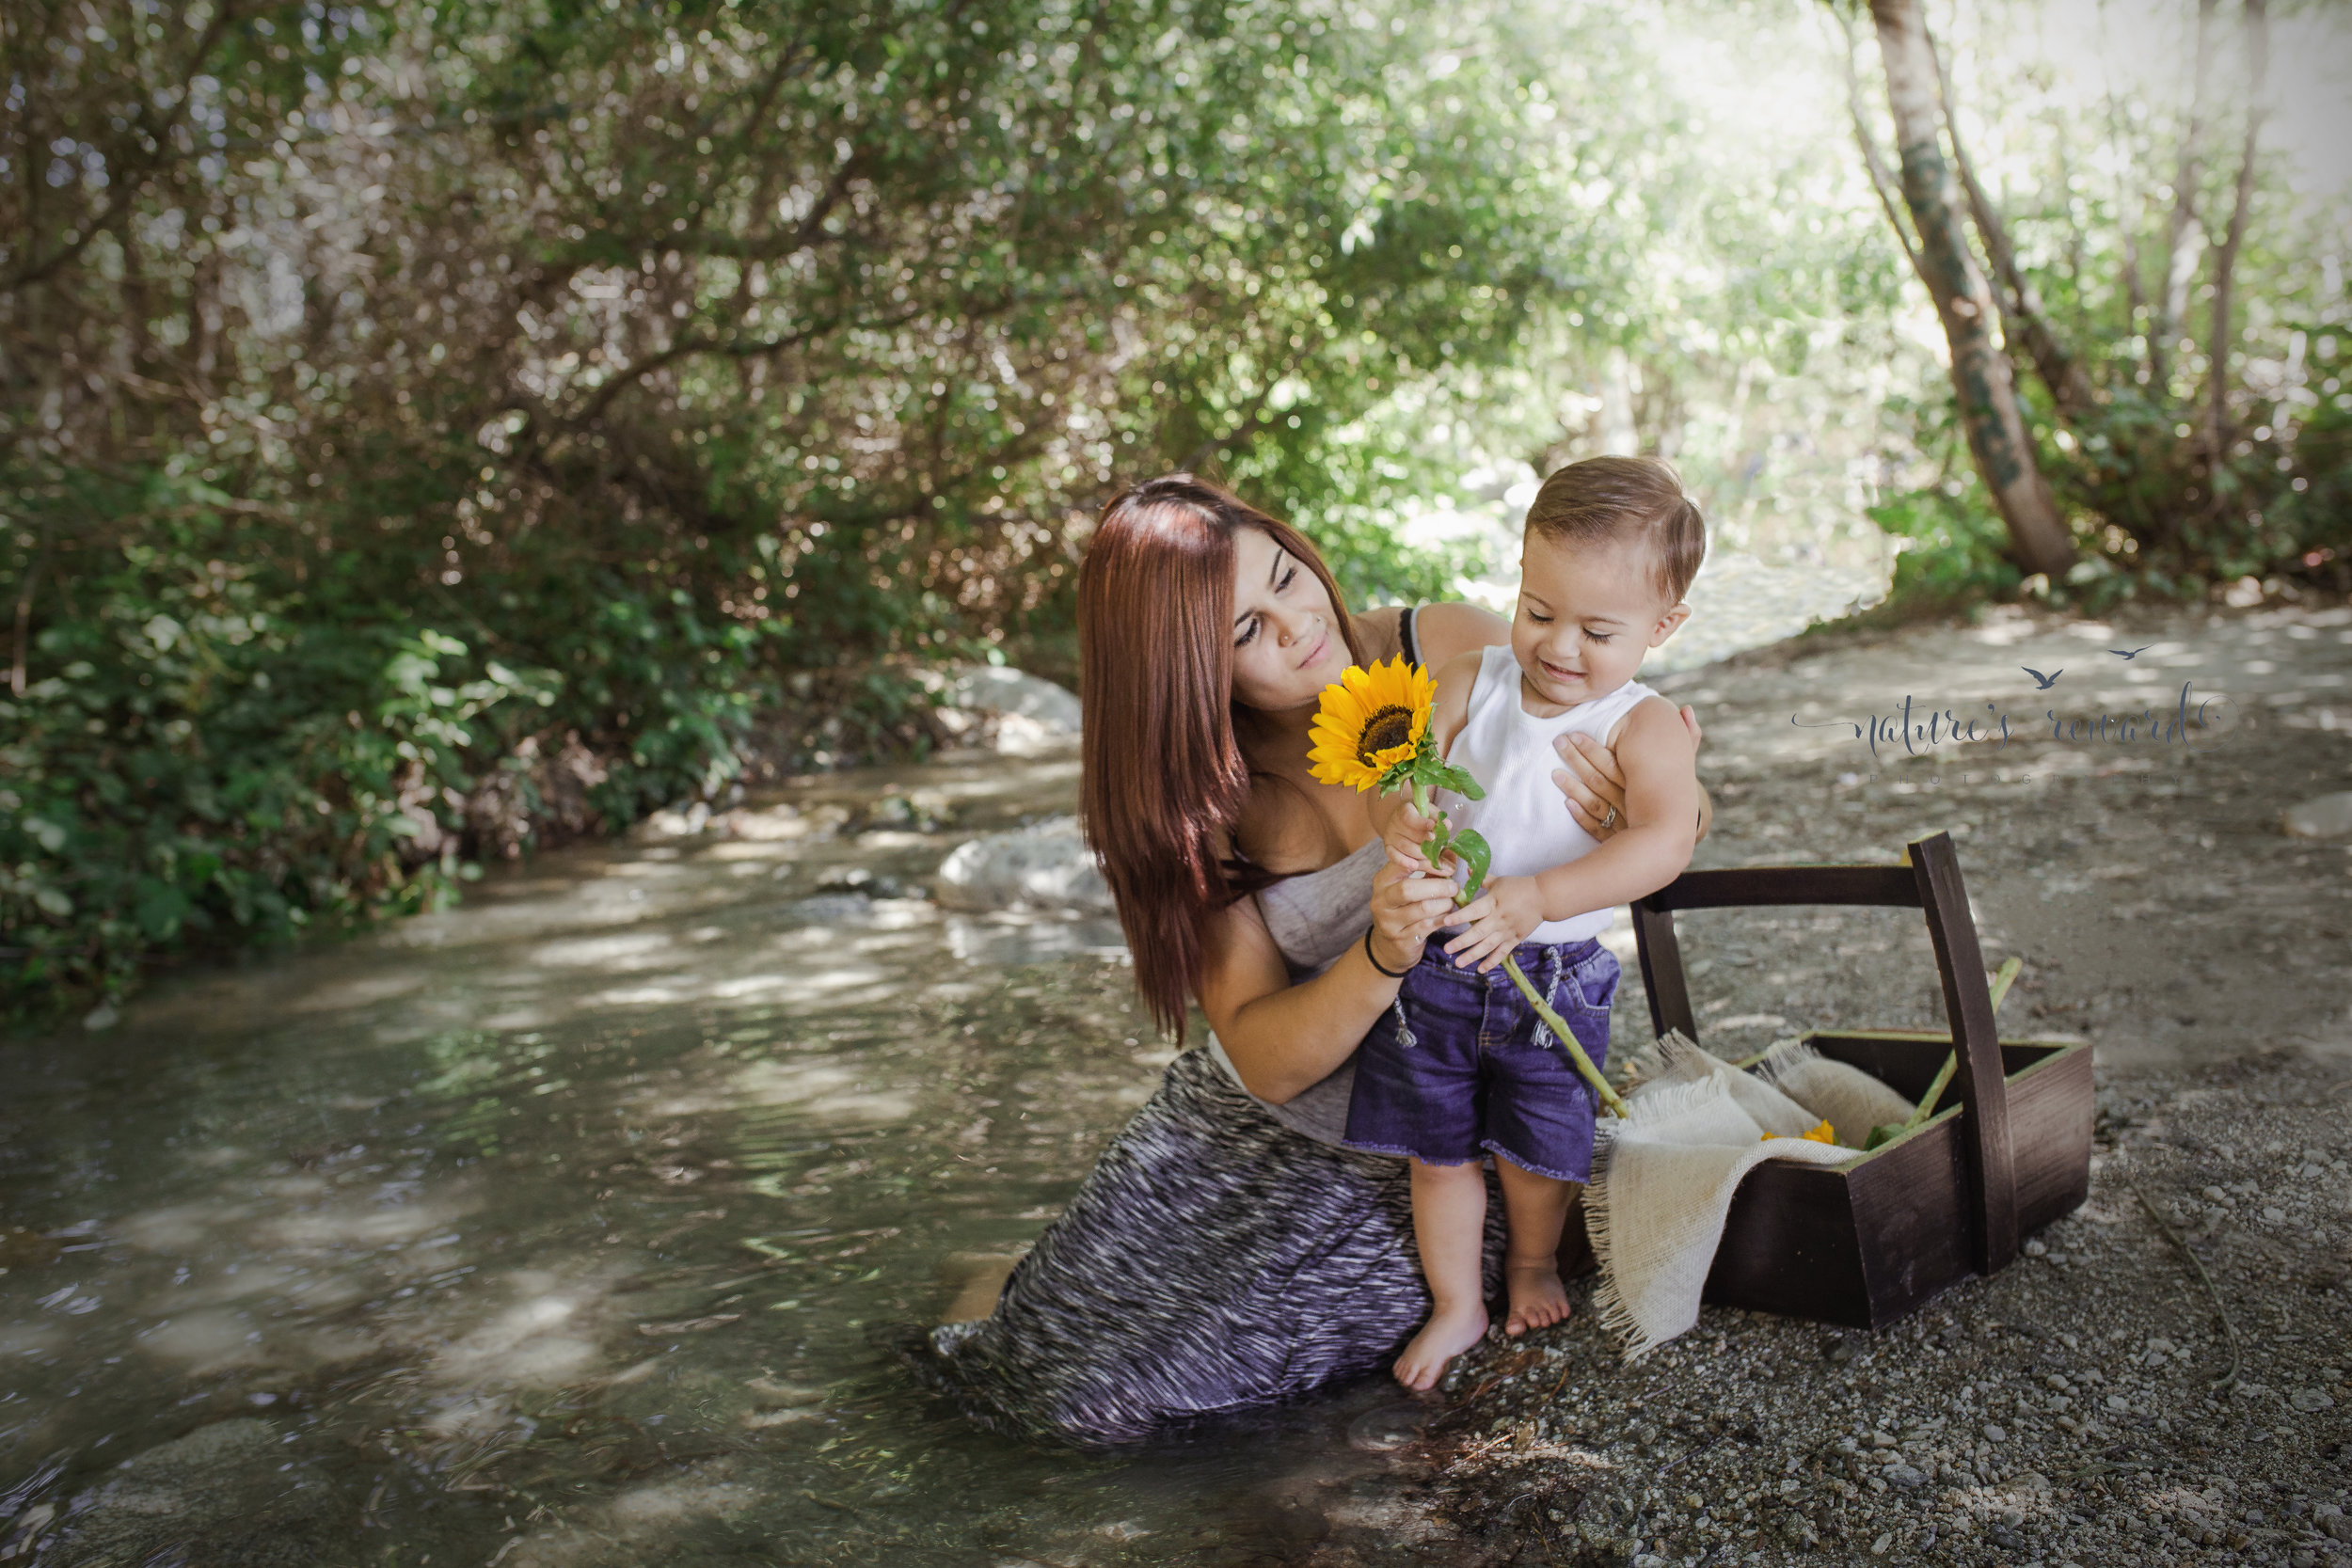 A flower like no other.  Her son blossoms in her doting care and love in this creekside portrait. Image by Nature's Reward Photography, a Southern California newborn, family and child photographer